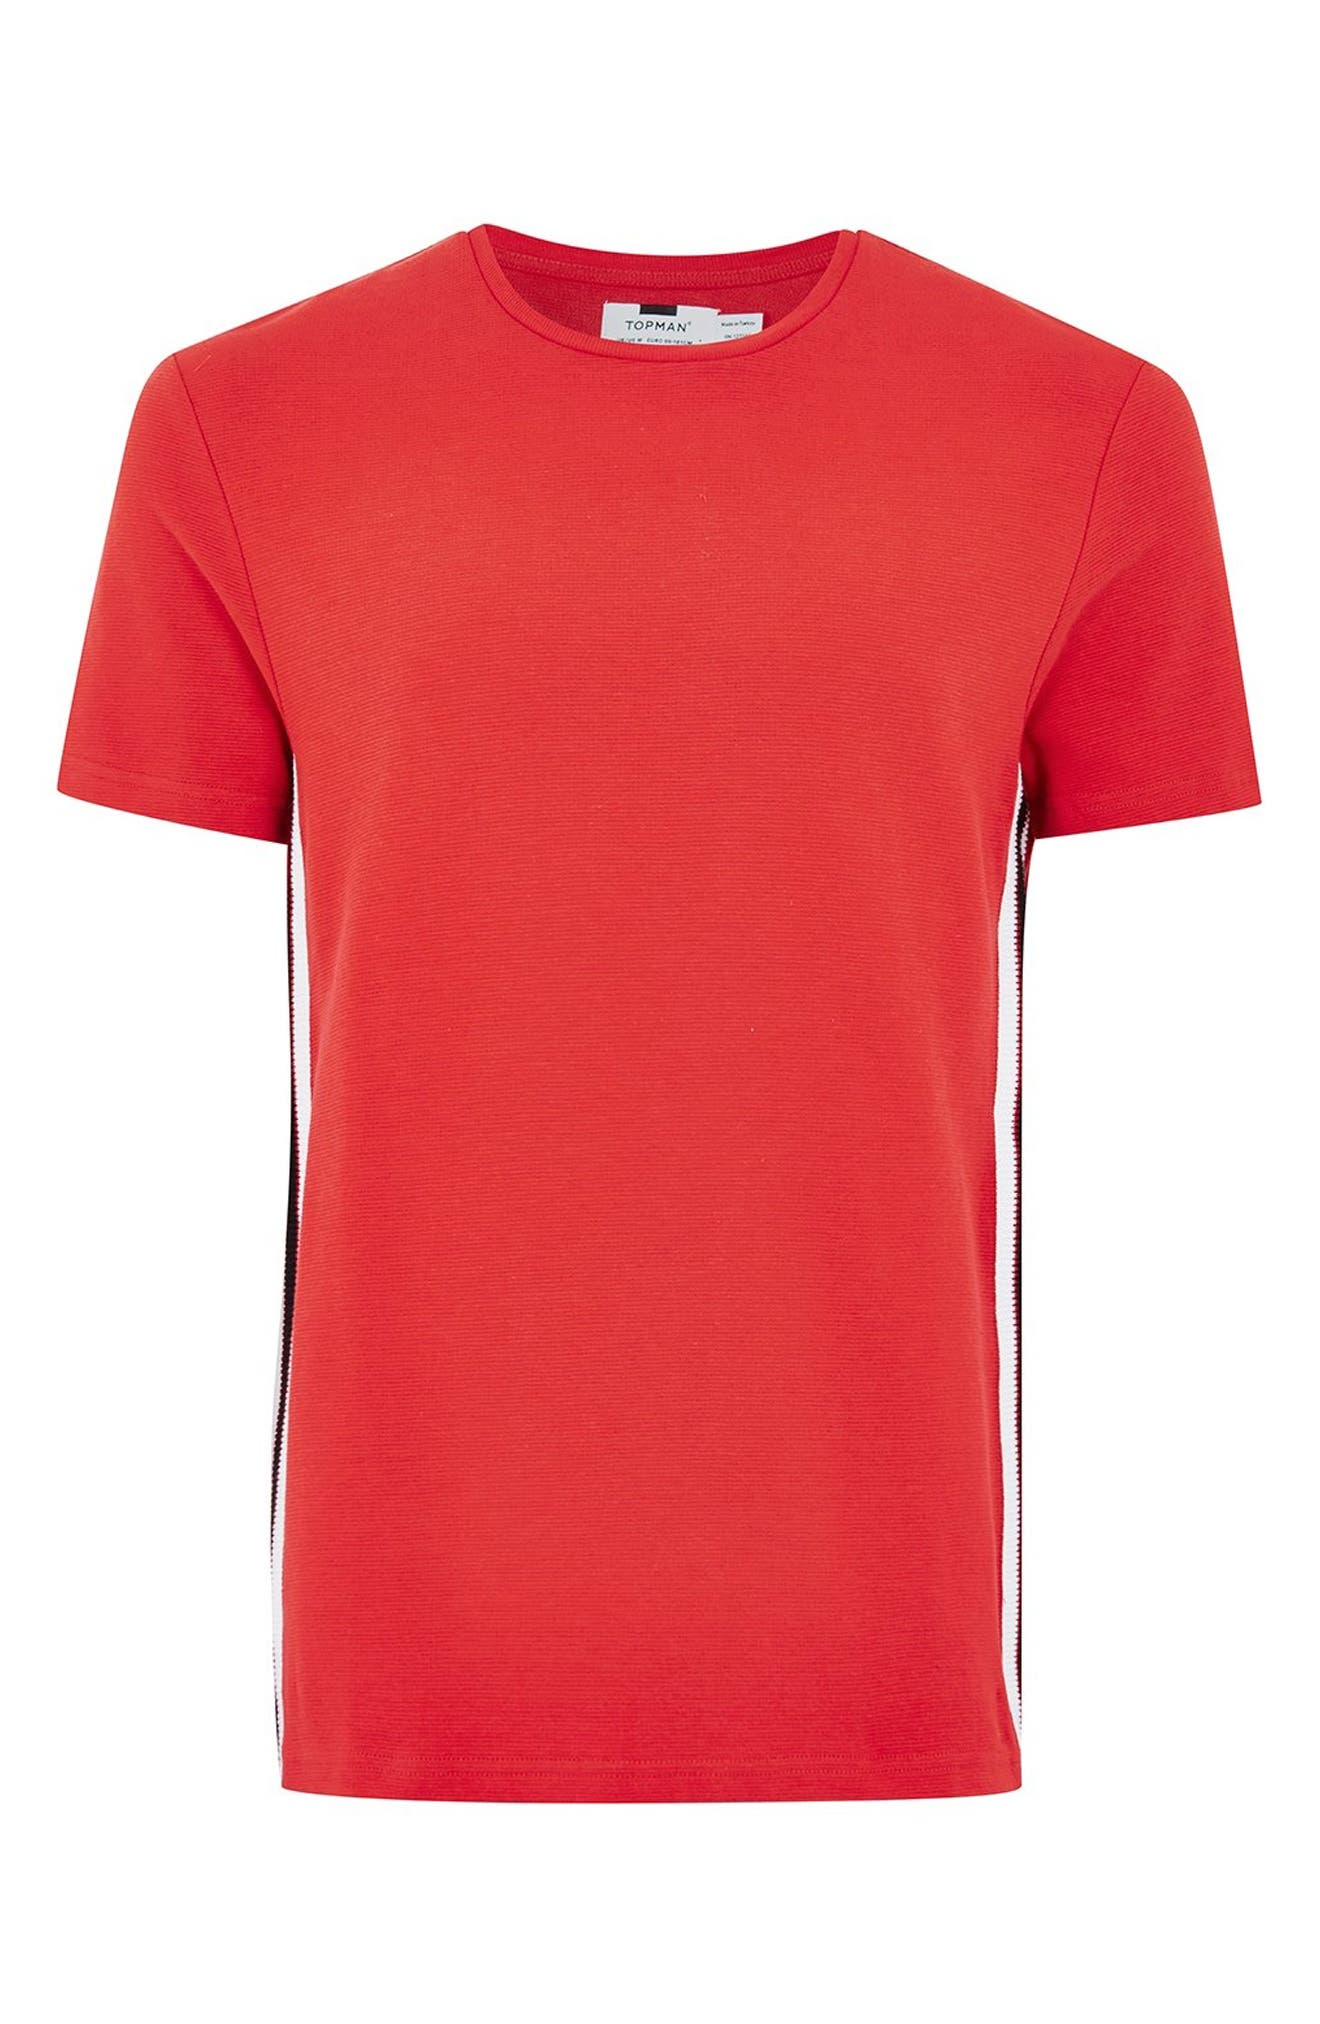 Taping Classic Fit T-Shirt,                             Alternate thumbnail 5, color,                             600